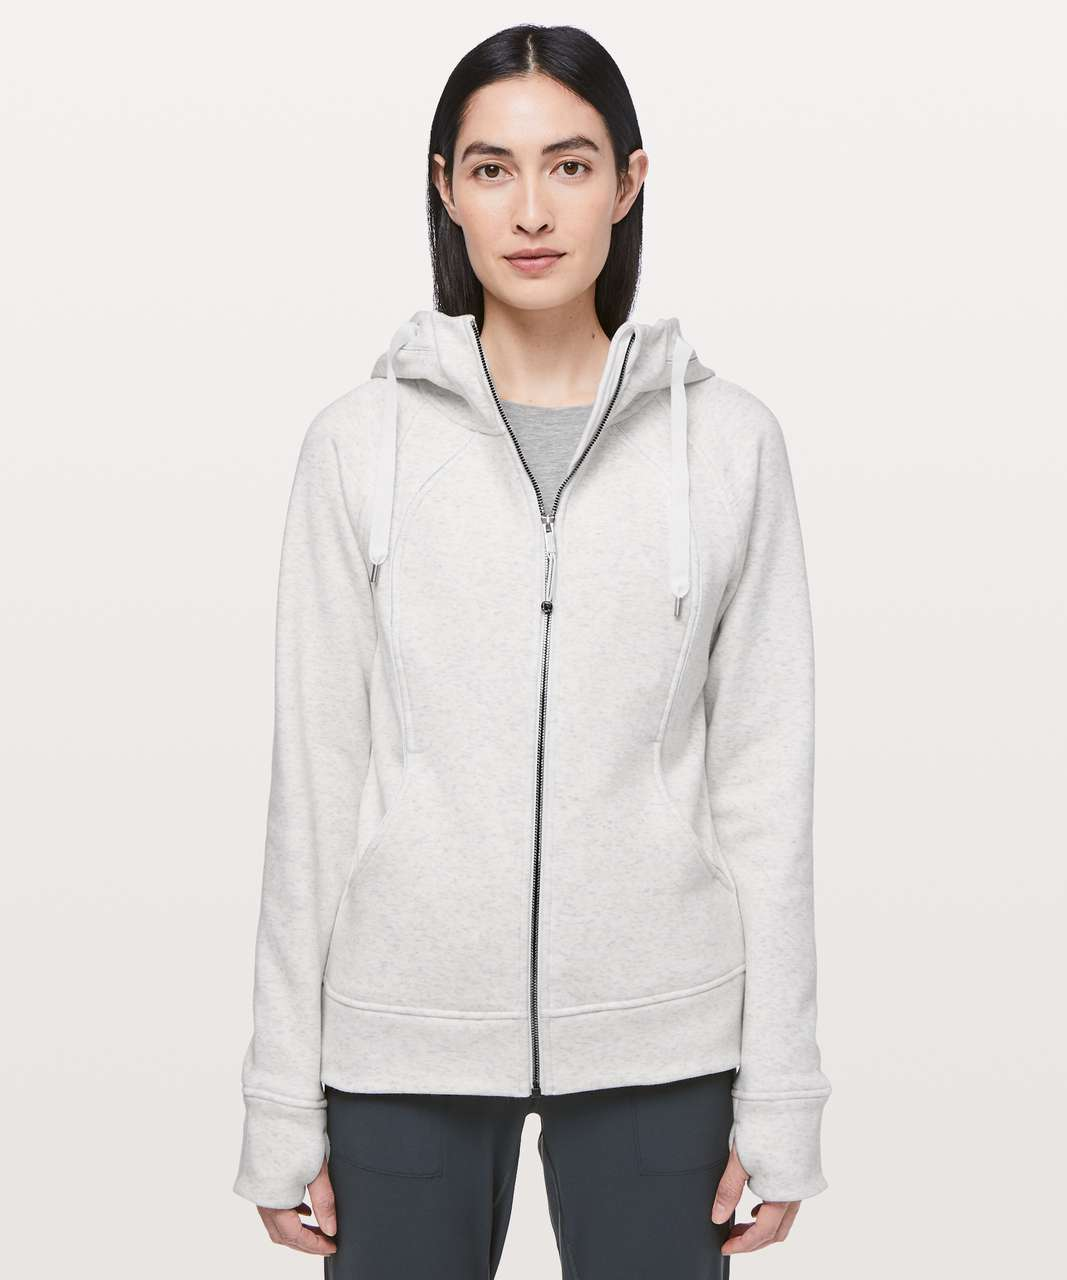 Lululemon Scuba Hoodie *Plush - Heathered White / White